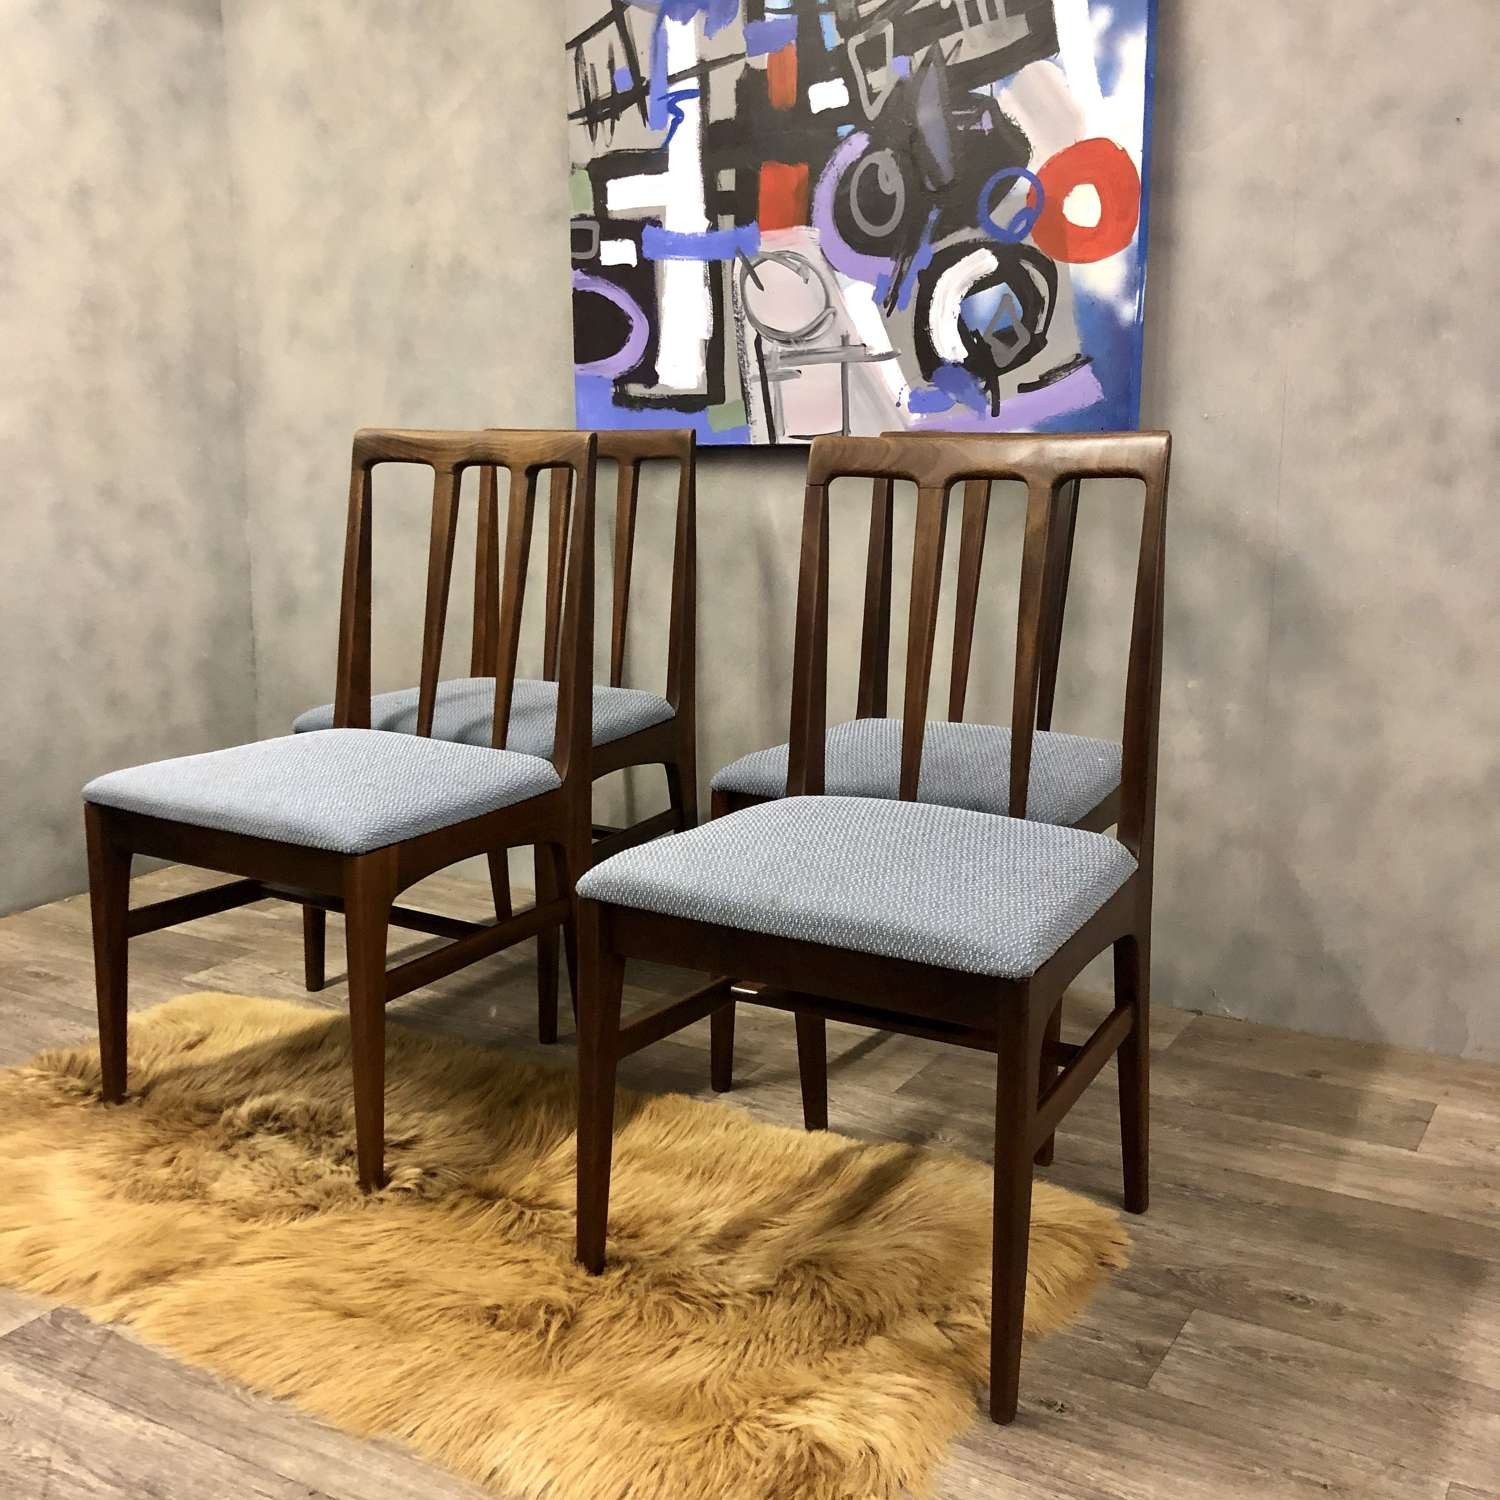 Dining chairs midcentury Afromosia (6)